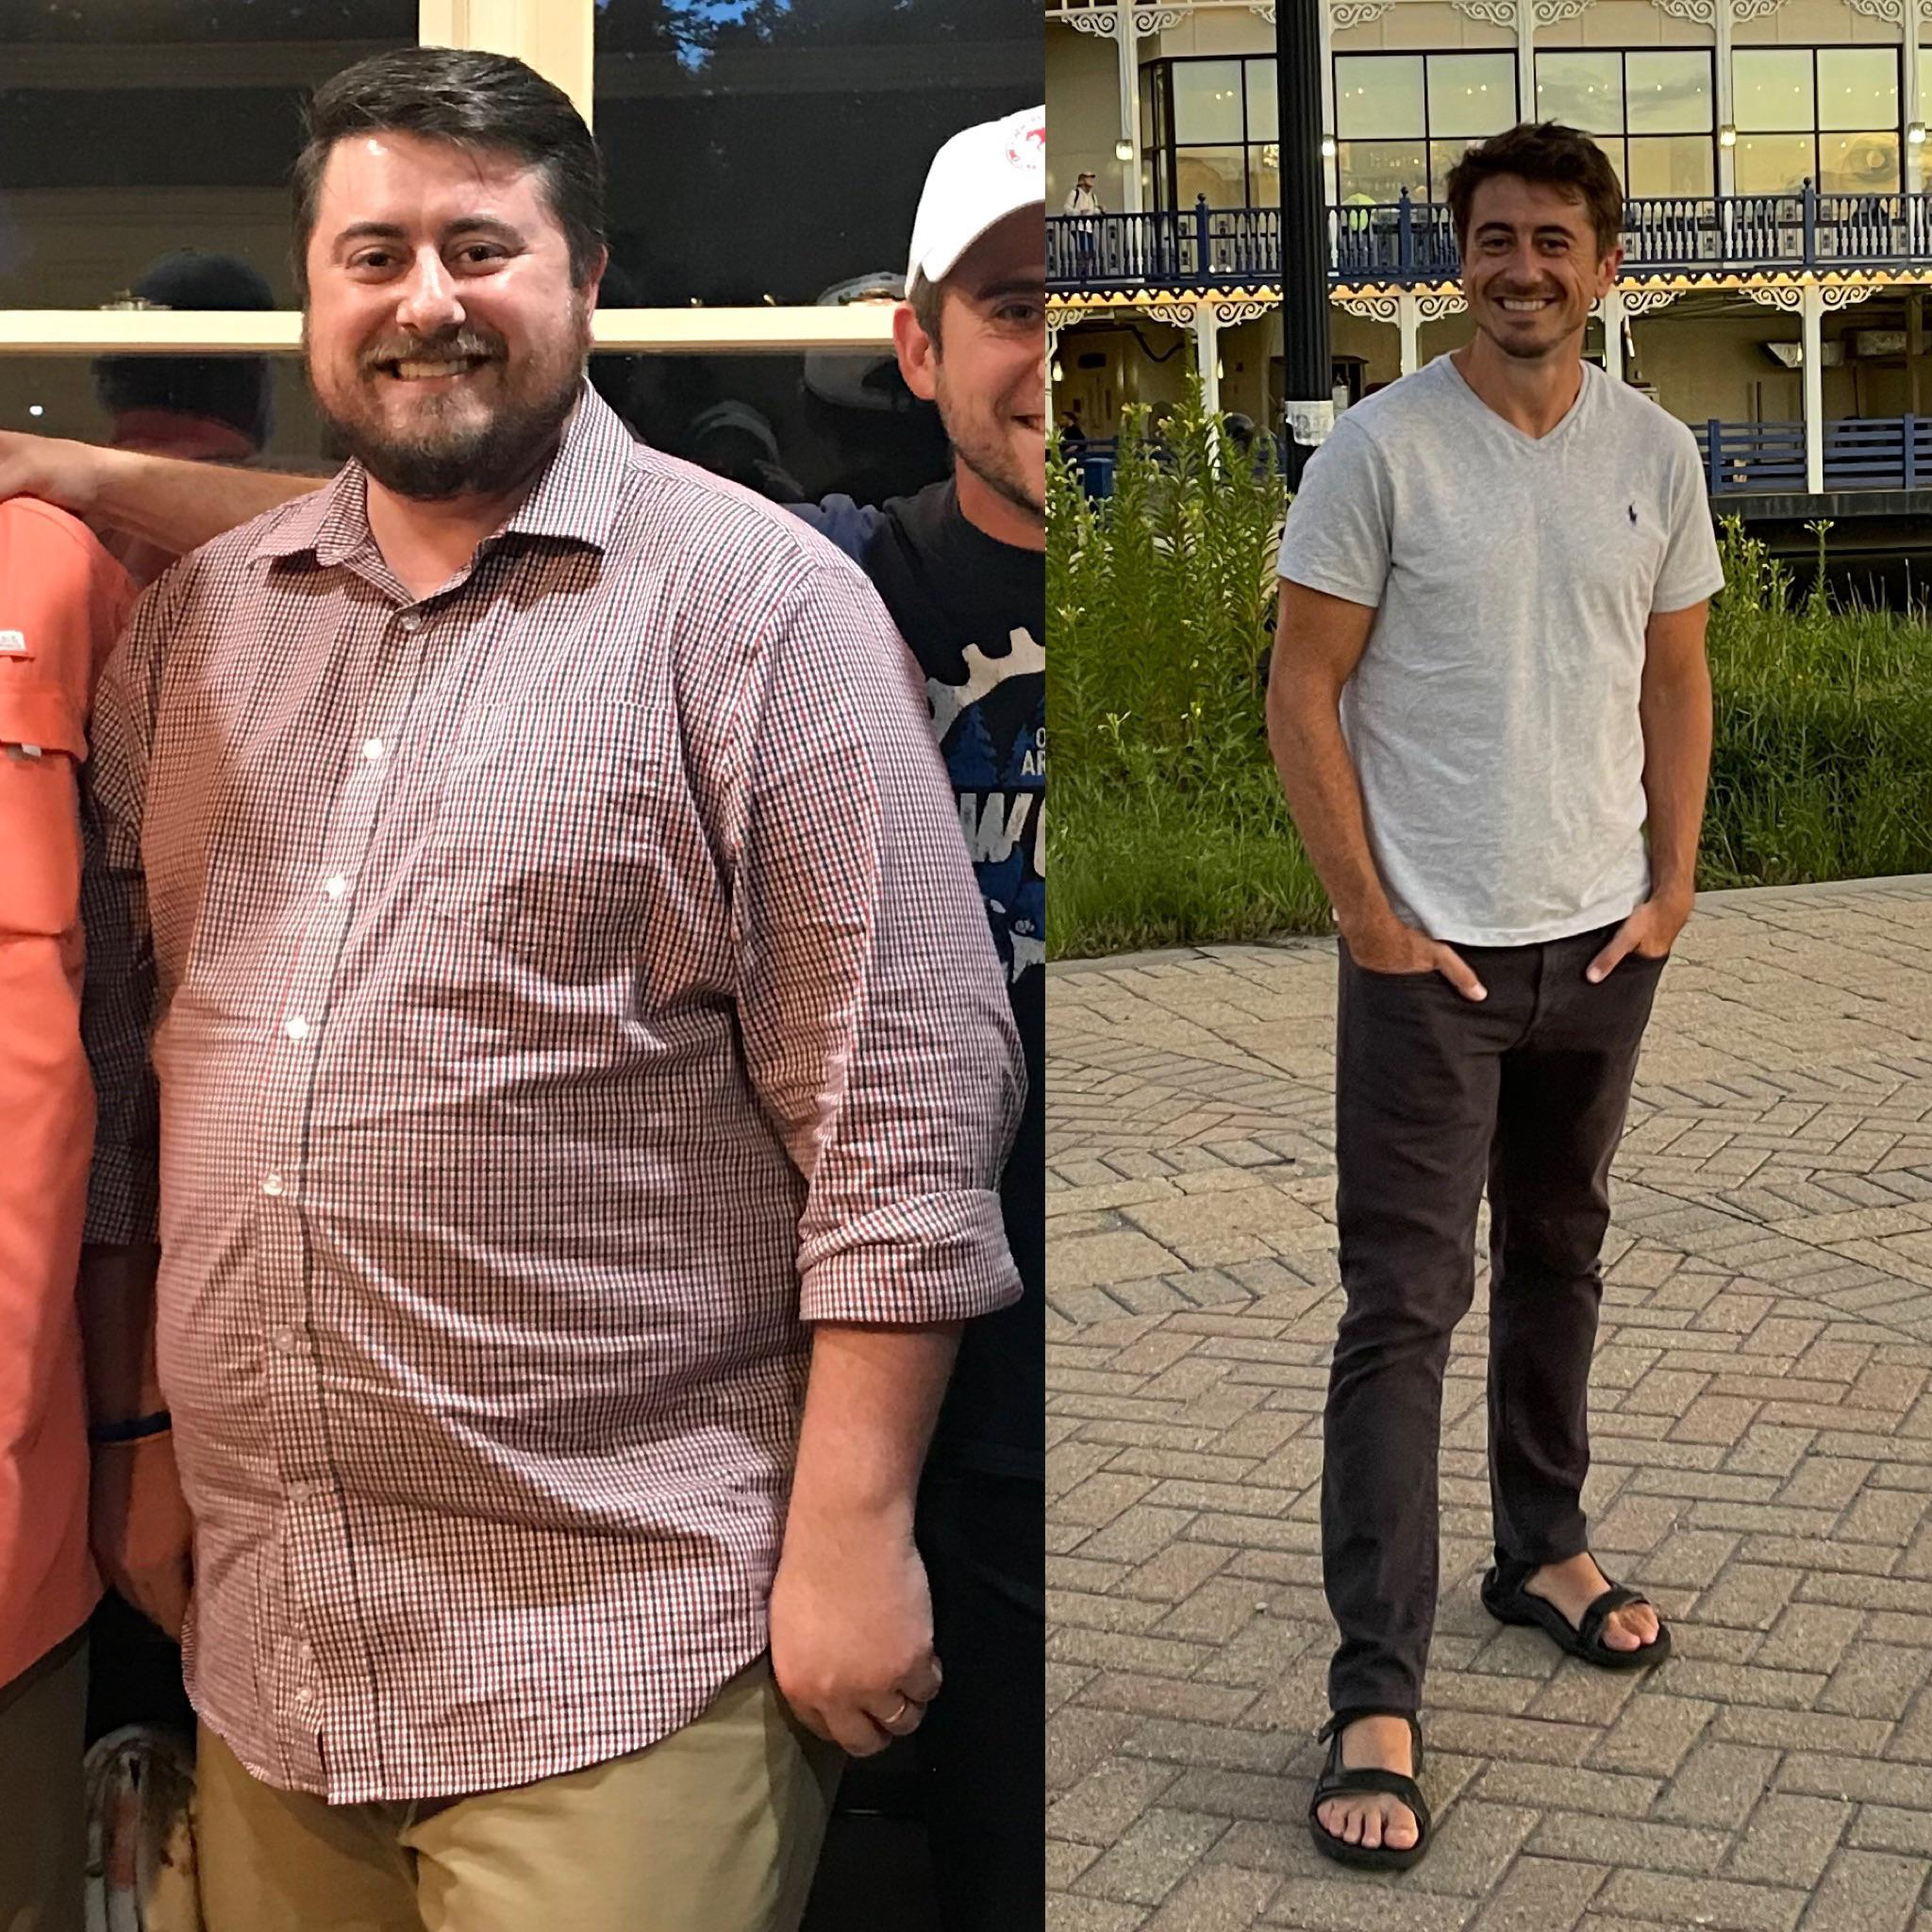 5 feet 10 Male 125 lbs Fat Loss Before and After 290 lbs to 165 lbs